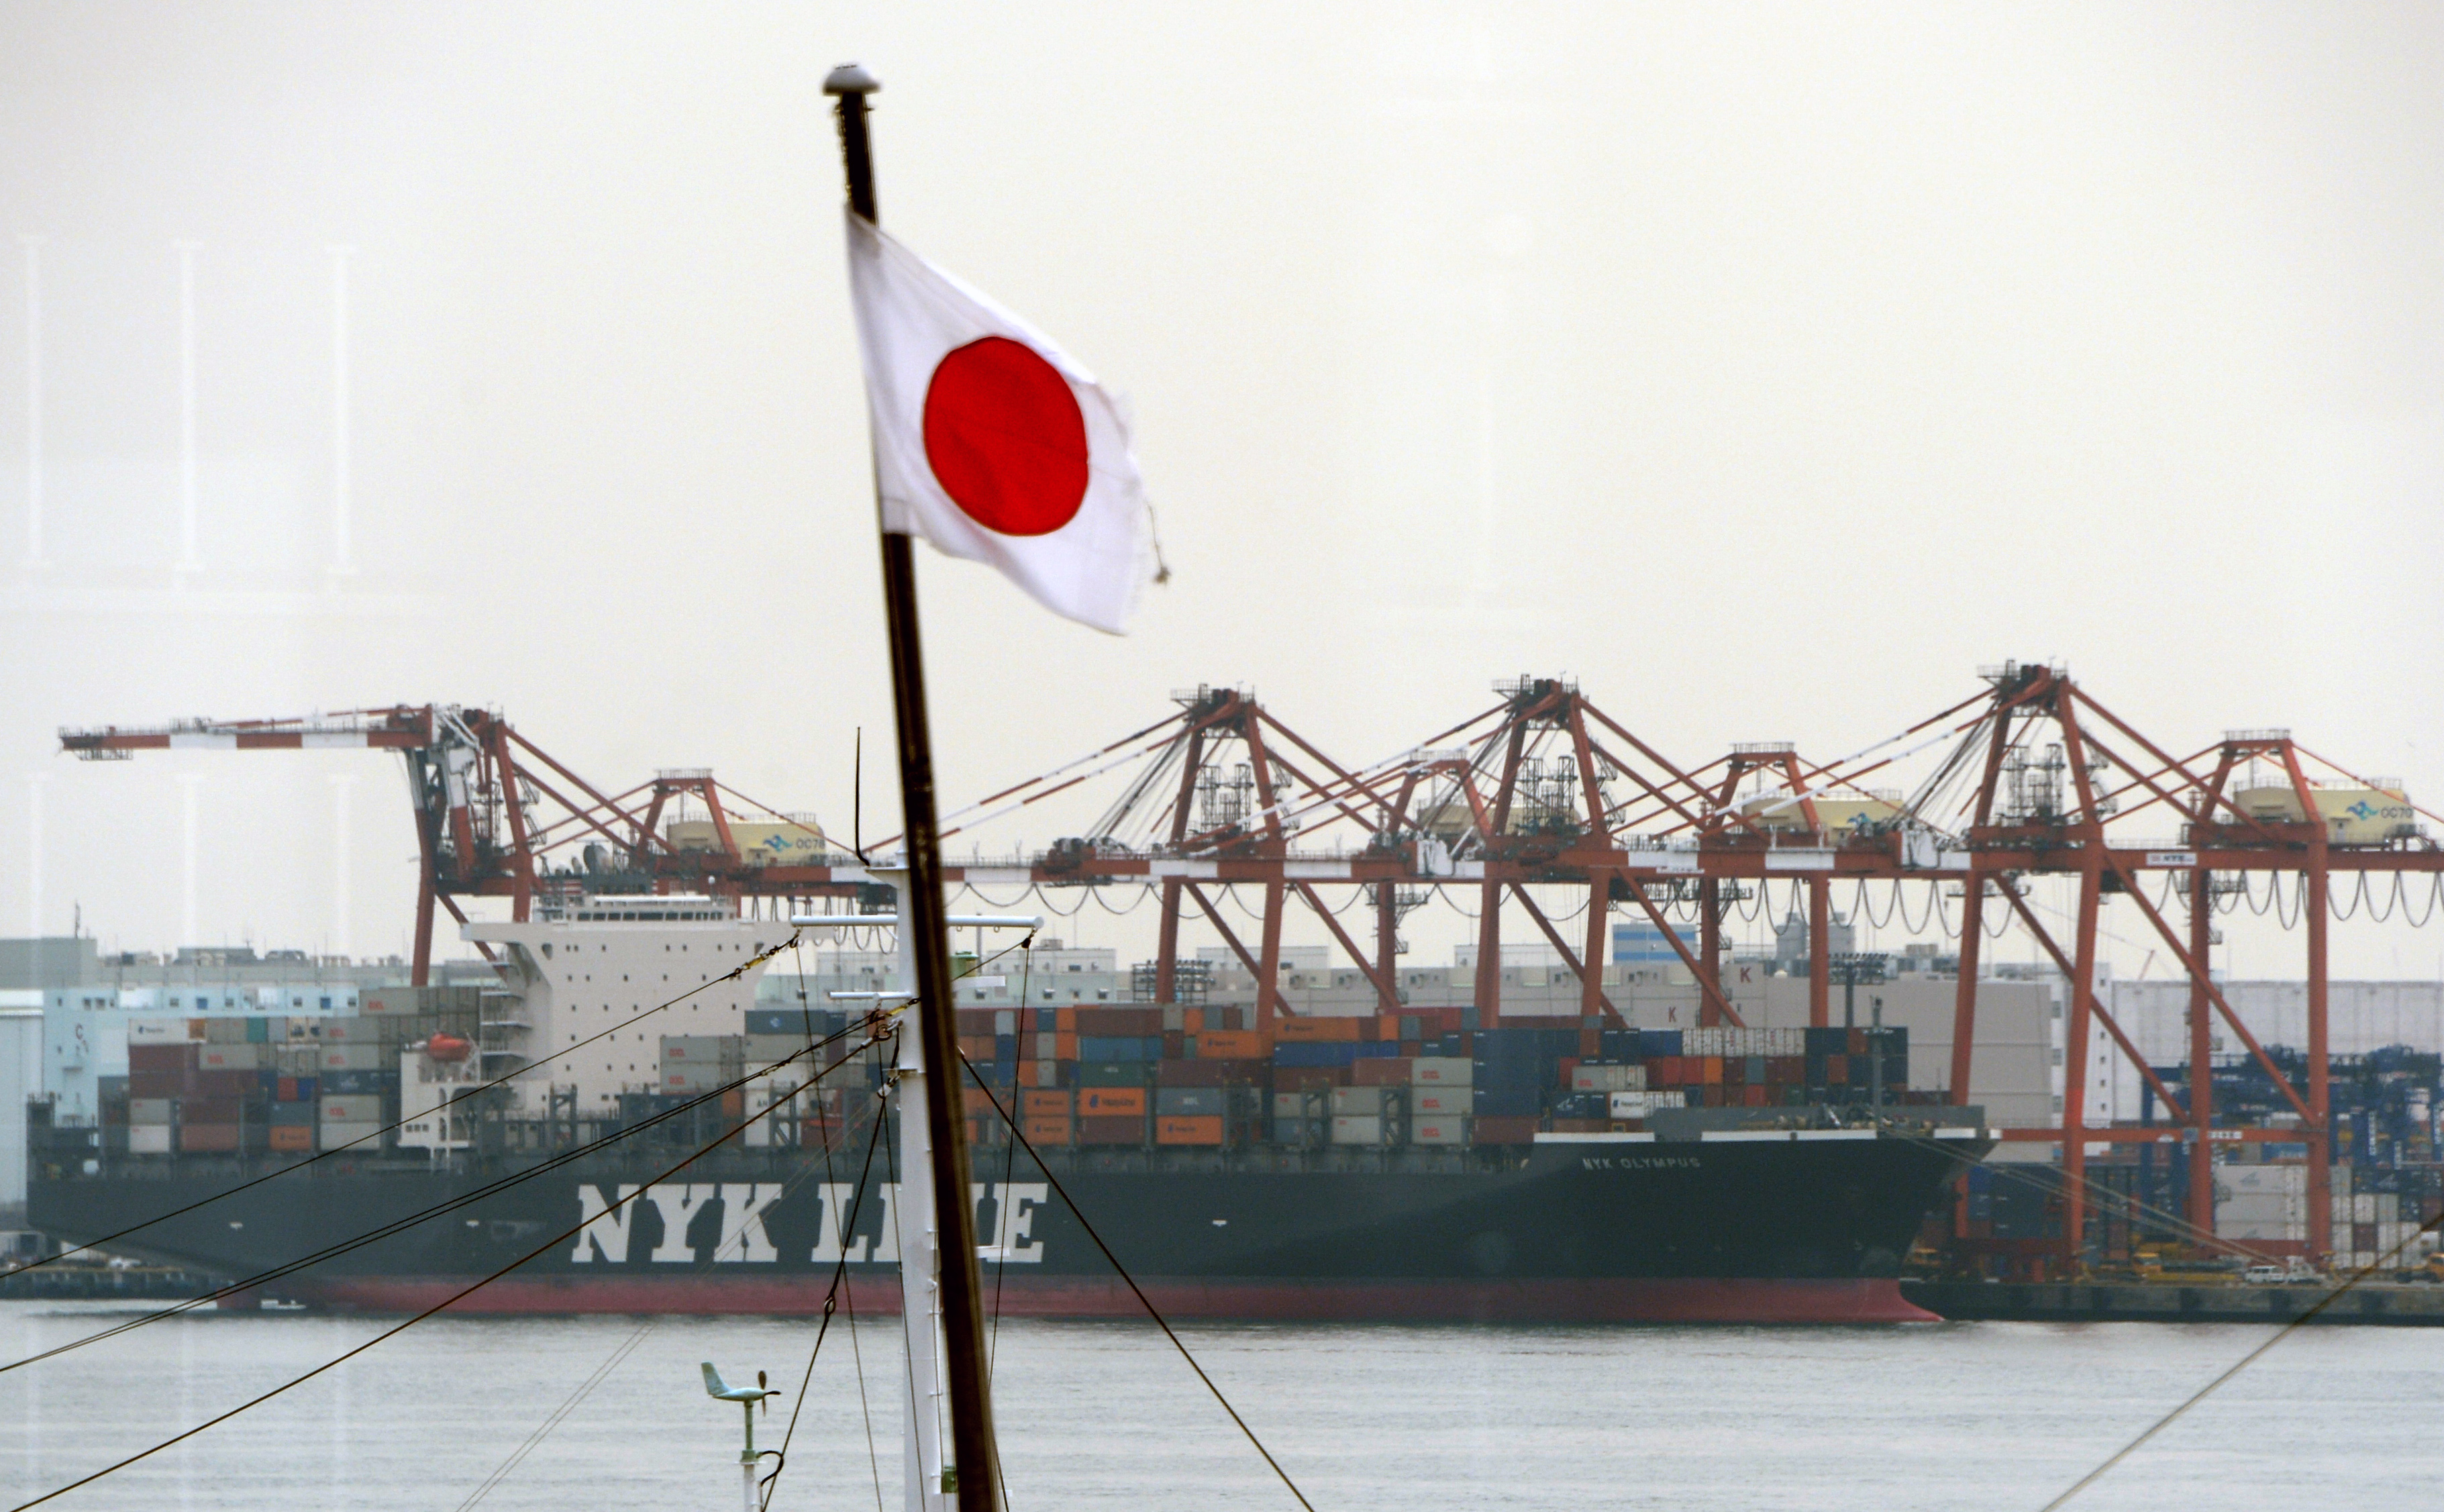 A cargo ship berthes alongside a container wharf in the port of Tokyo on February 20, 2014.